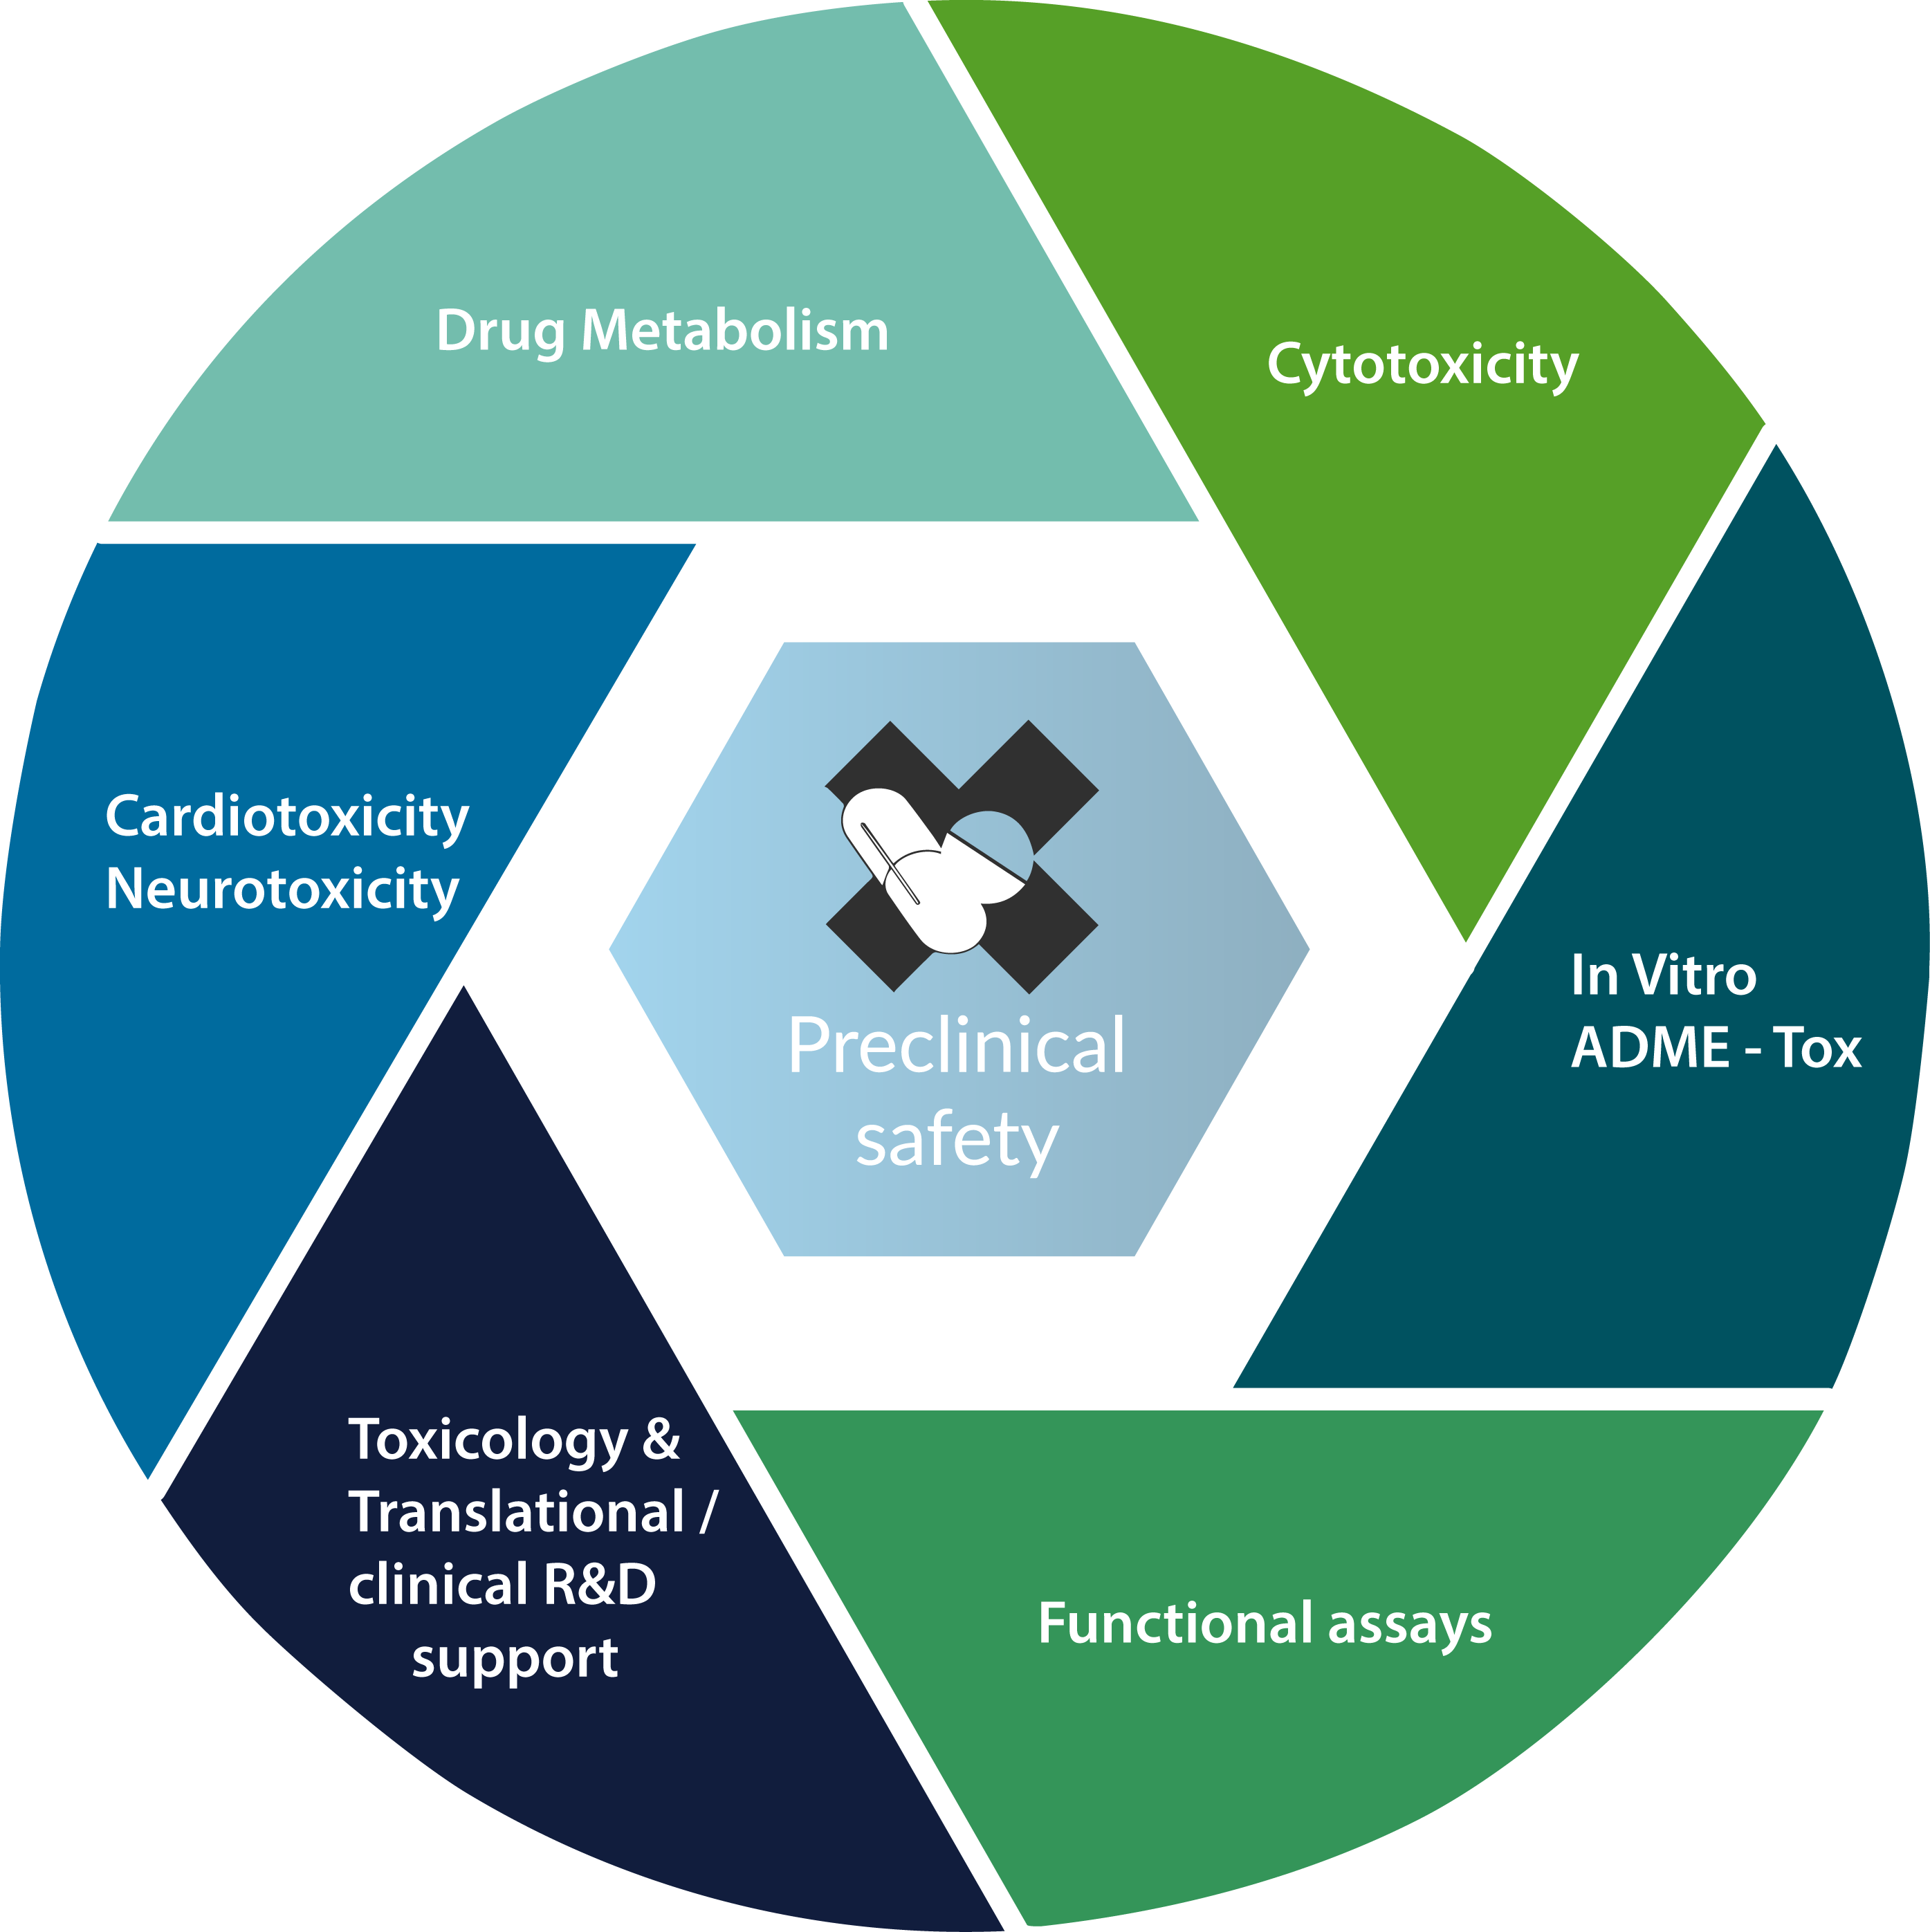 Preclinical safety